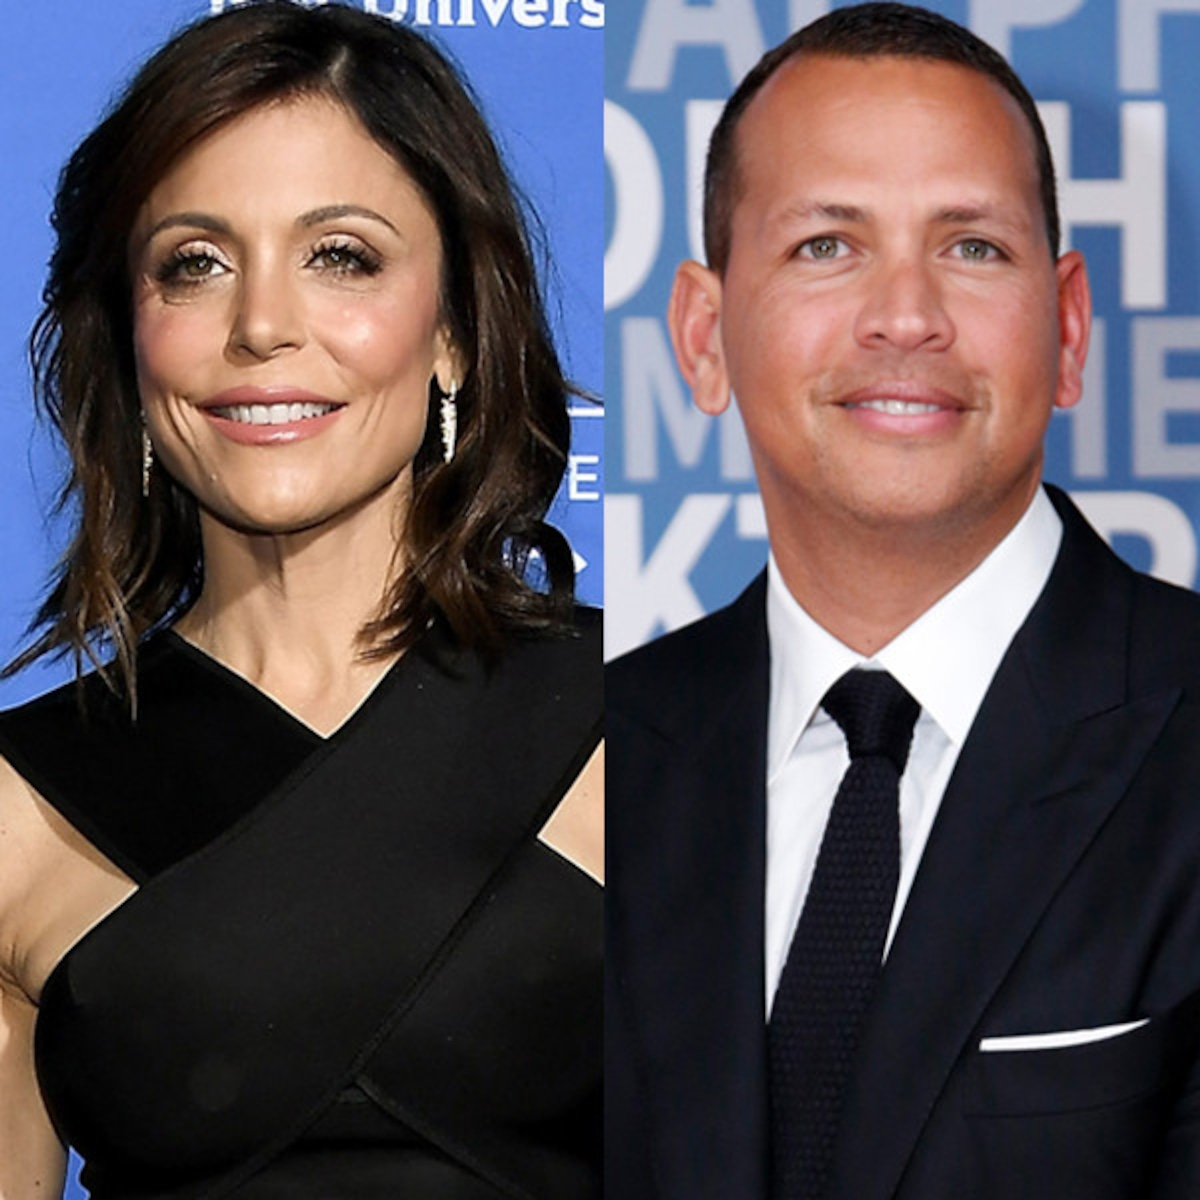 Bethenny Frankel Confirms She Once Dated Alex Rodriguez - E! Online